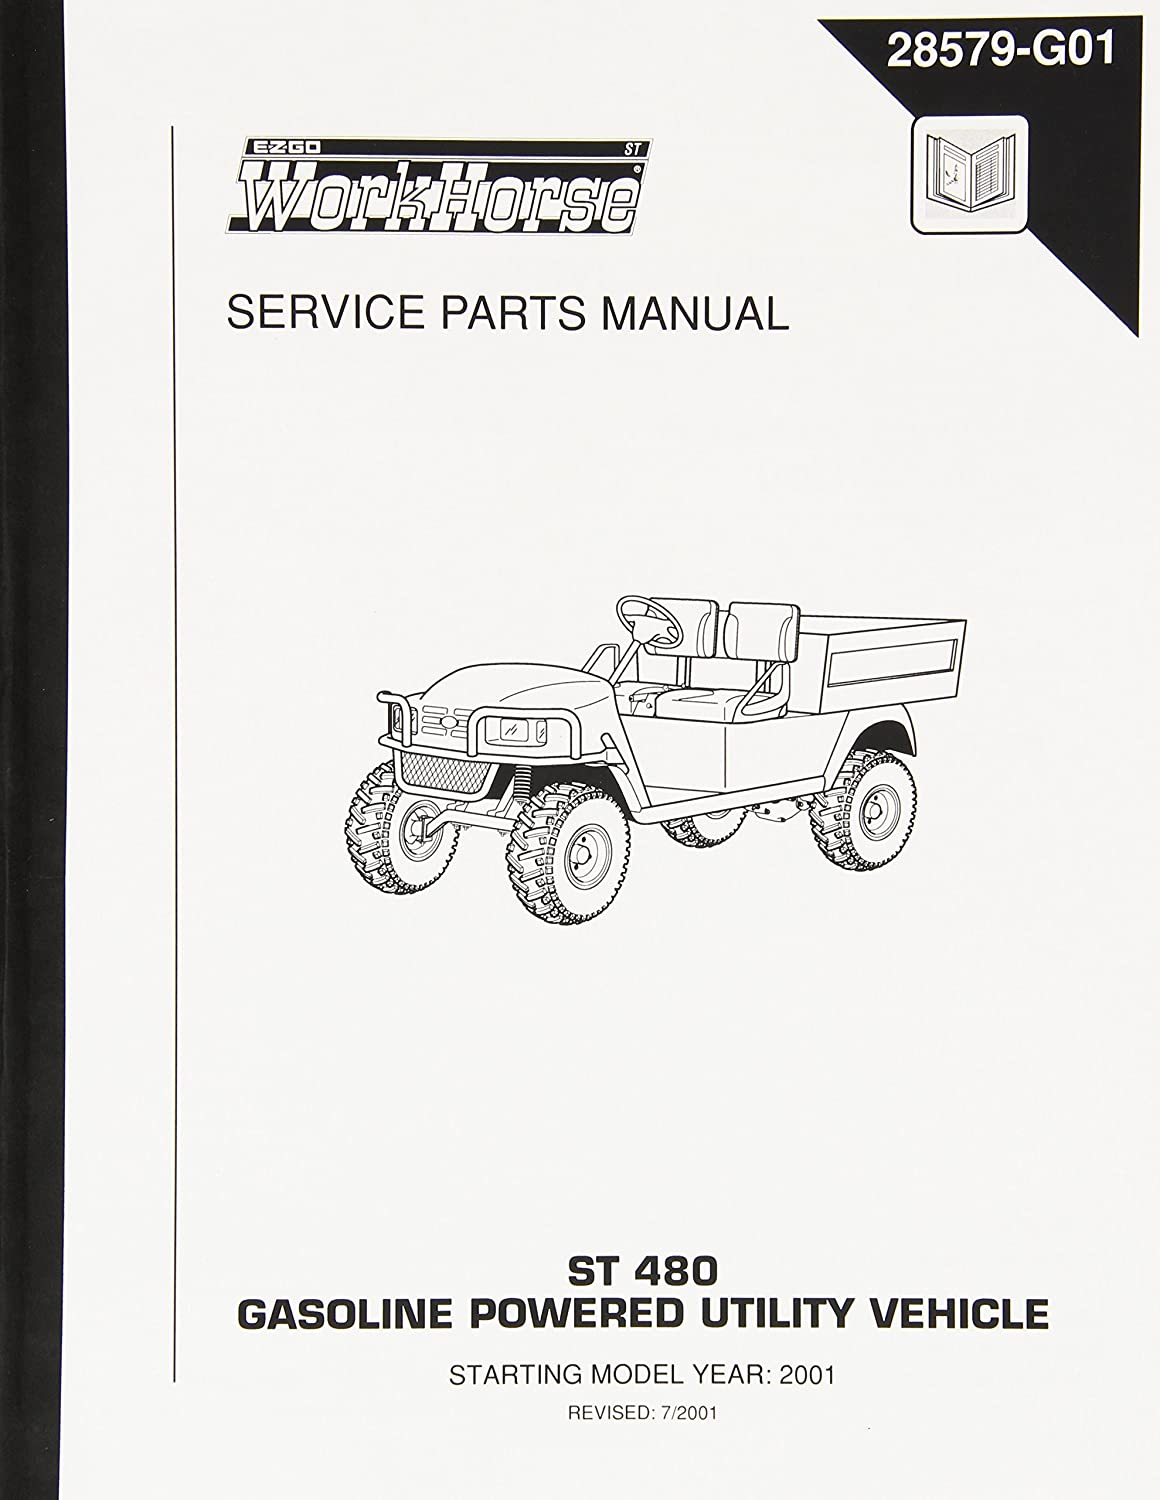 Amazon.com : EZGO 28579G01 2001-2002 Service Parts Manual for ST 480  Gasoline Powered Utility Vehicles : Outdoor Decorative Fences : Garden &  Outdoor